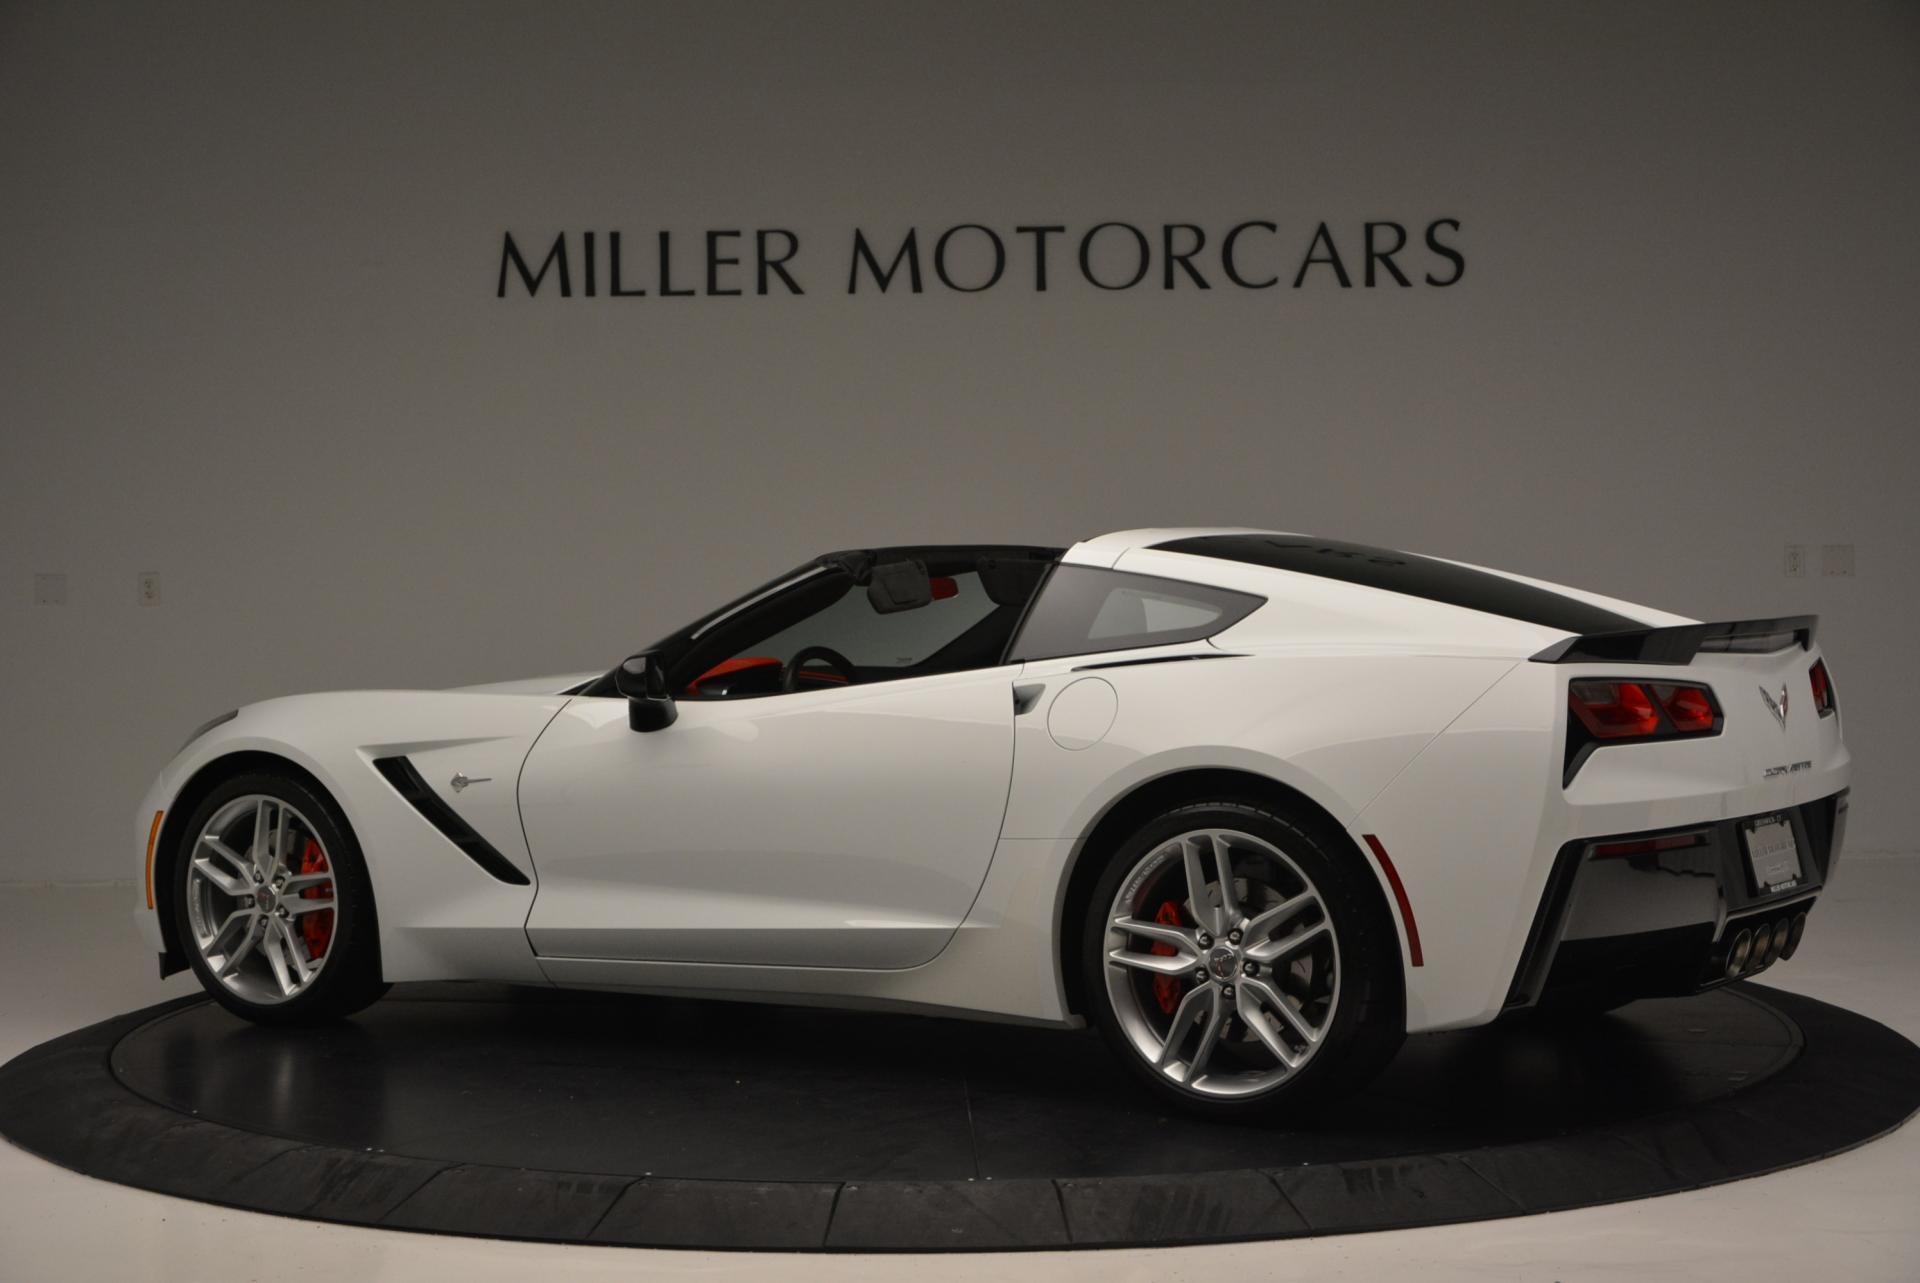 Used 2014 Chevrolet Corvette Stingray Z51 For Sale In Greenwich, CT. Alfa Romeo of Greenwich, 7089 529_p7